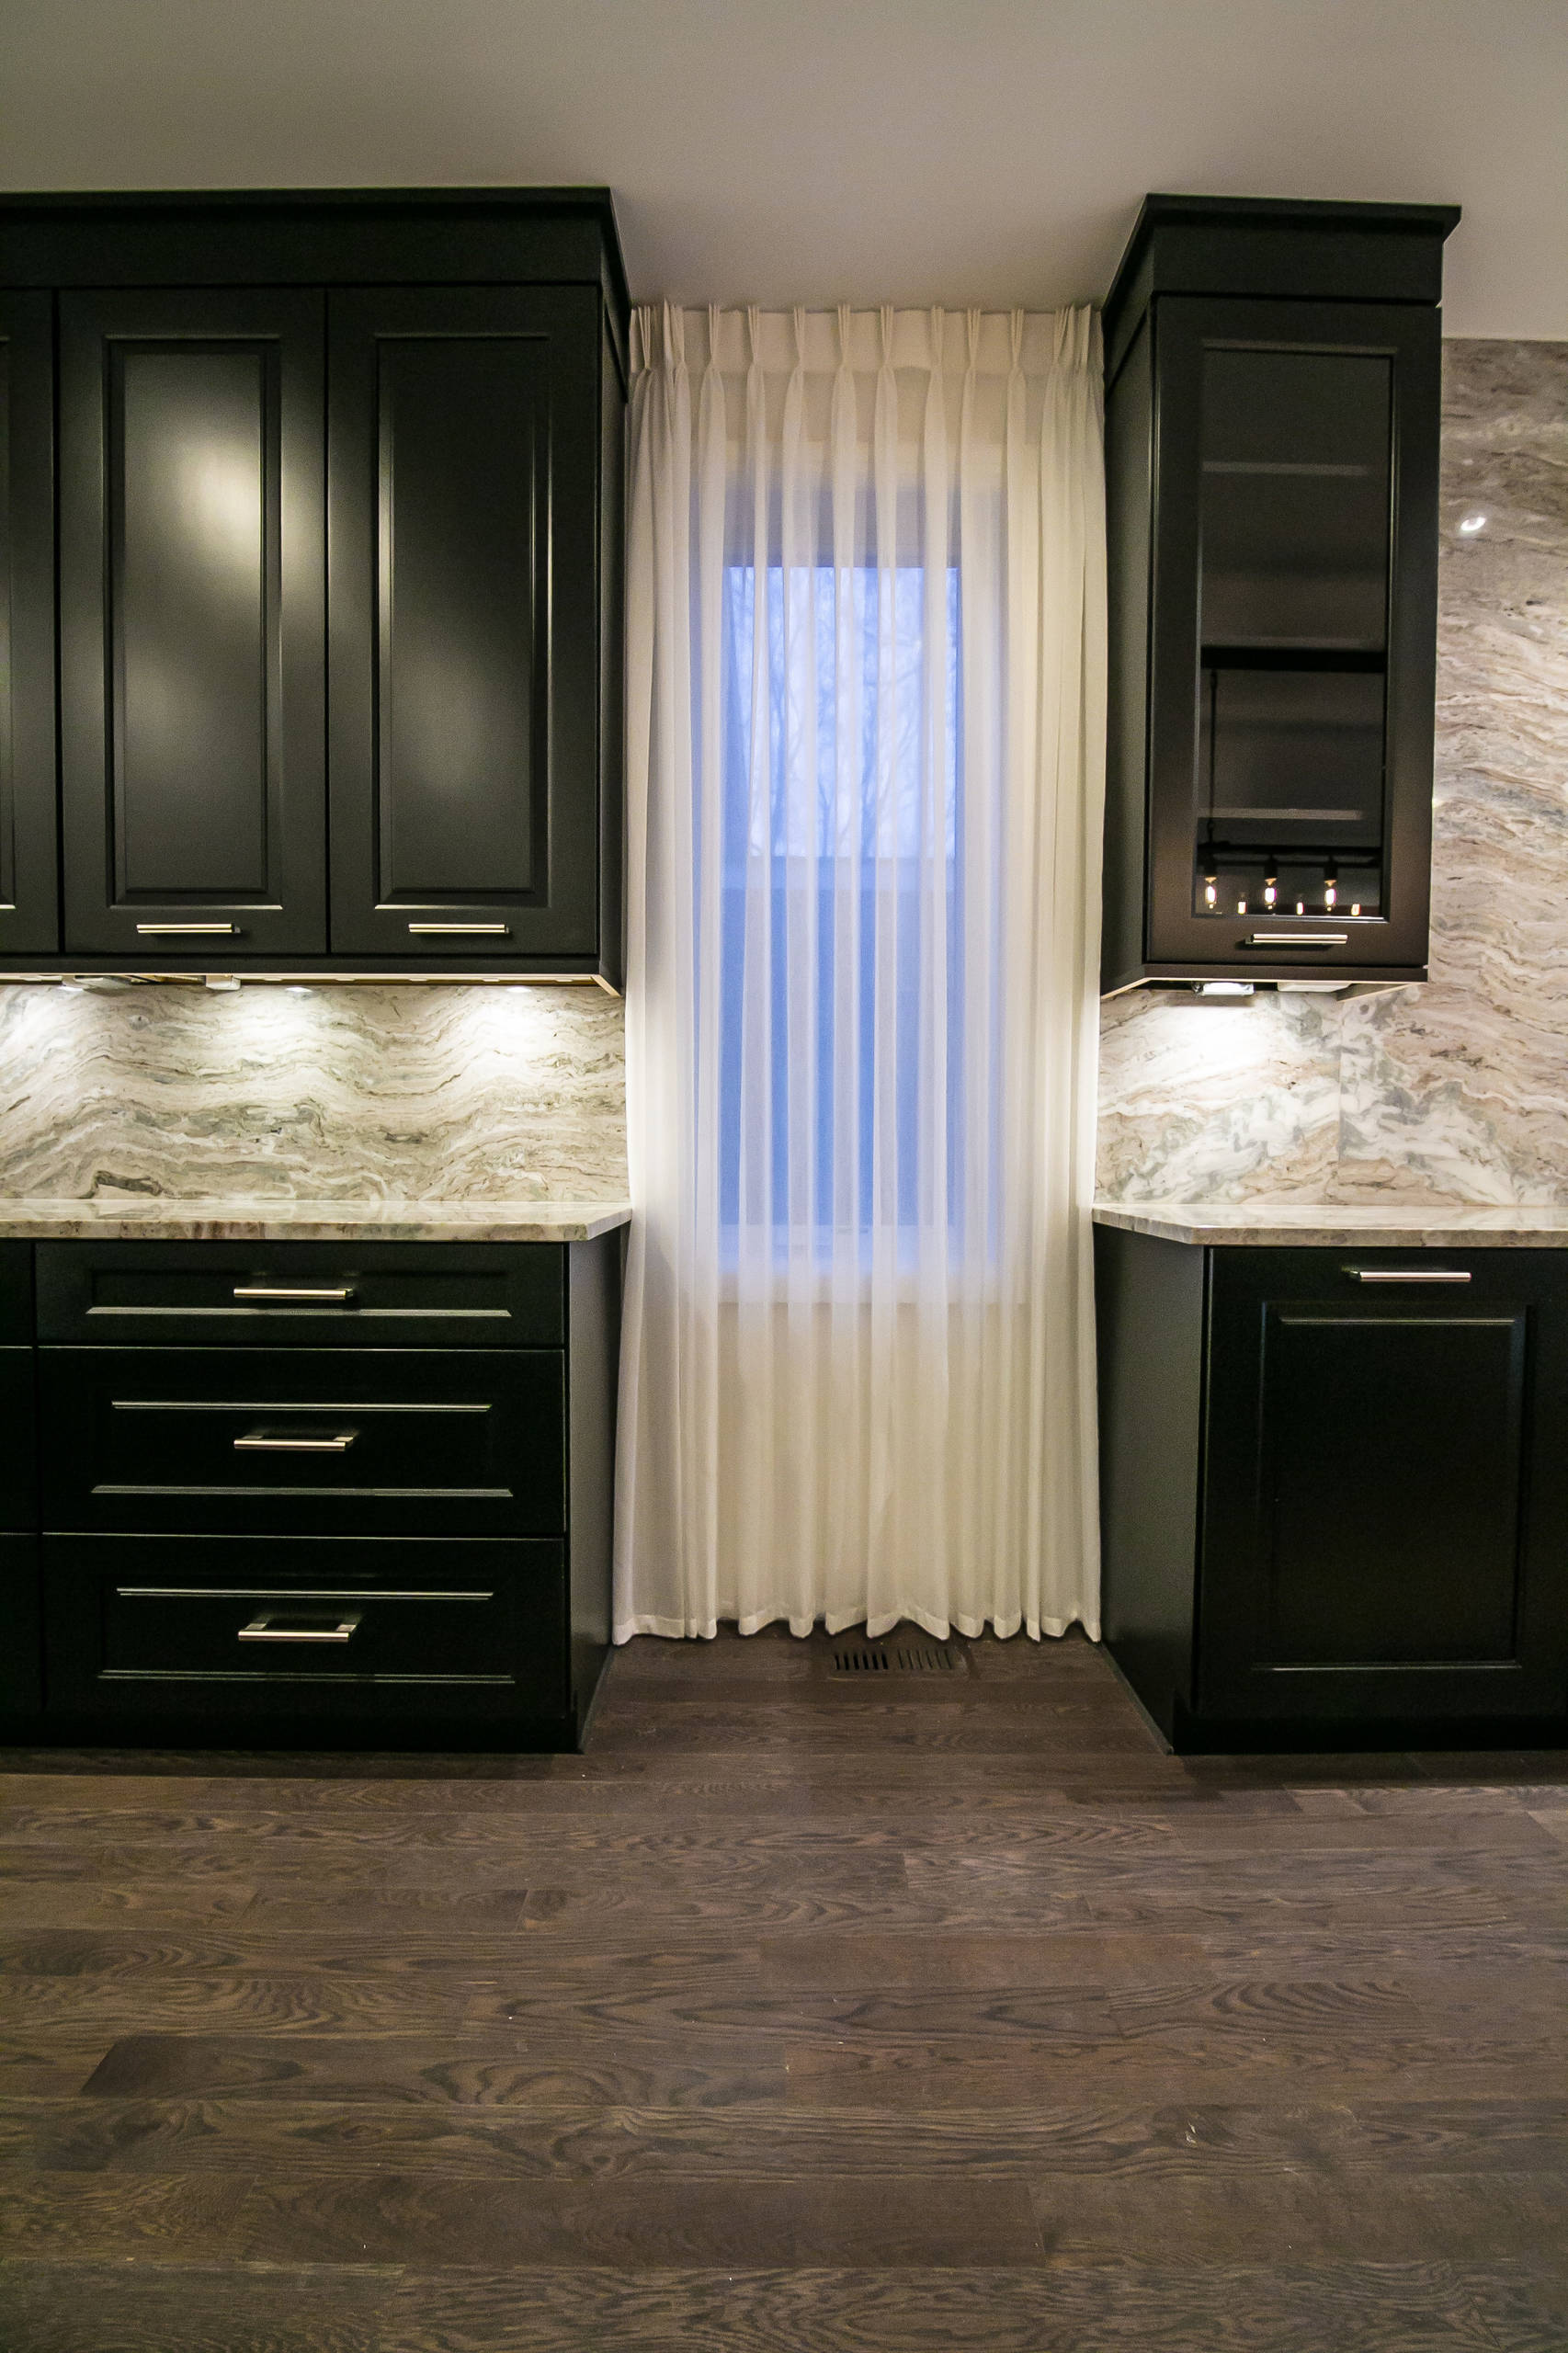 The desire for a modern, yet luxurious, aesthetic inspired a specific attention to detail and material for this home in Huntington Woods. Custom black cabinetry, Fantasy Brown quartzite and stainless